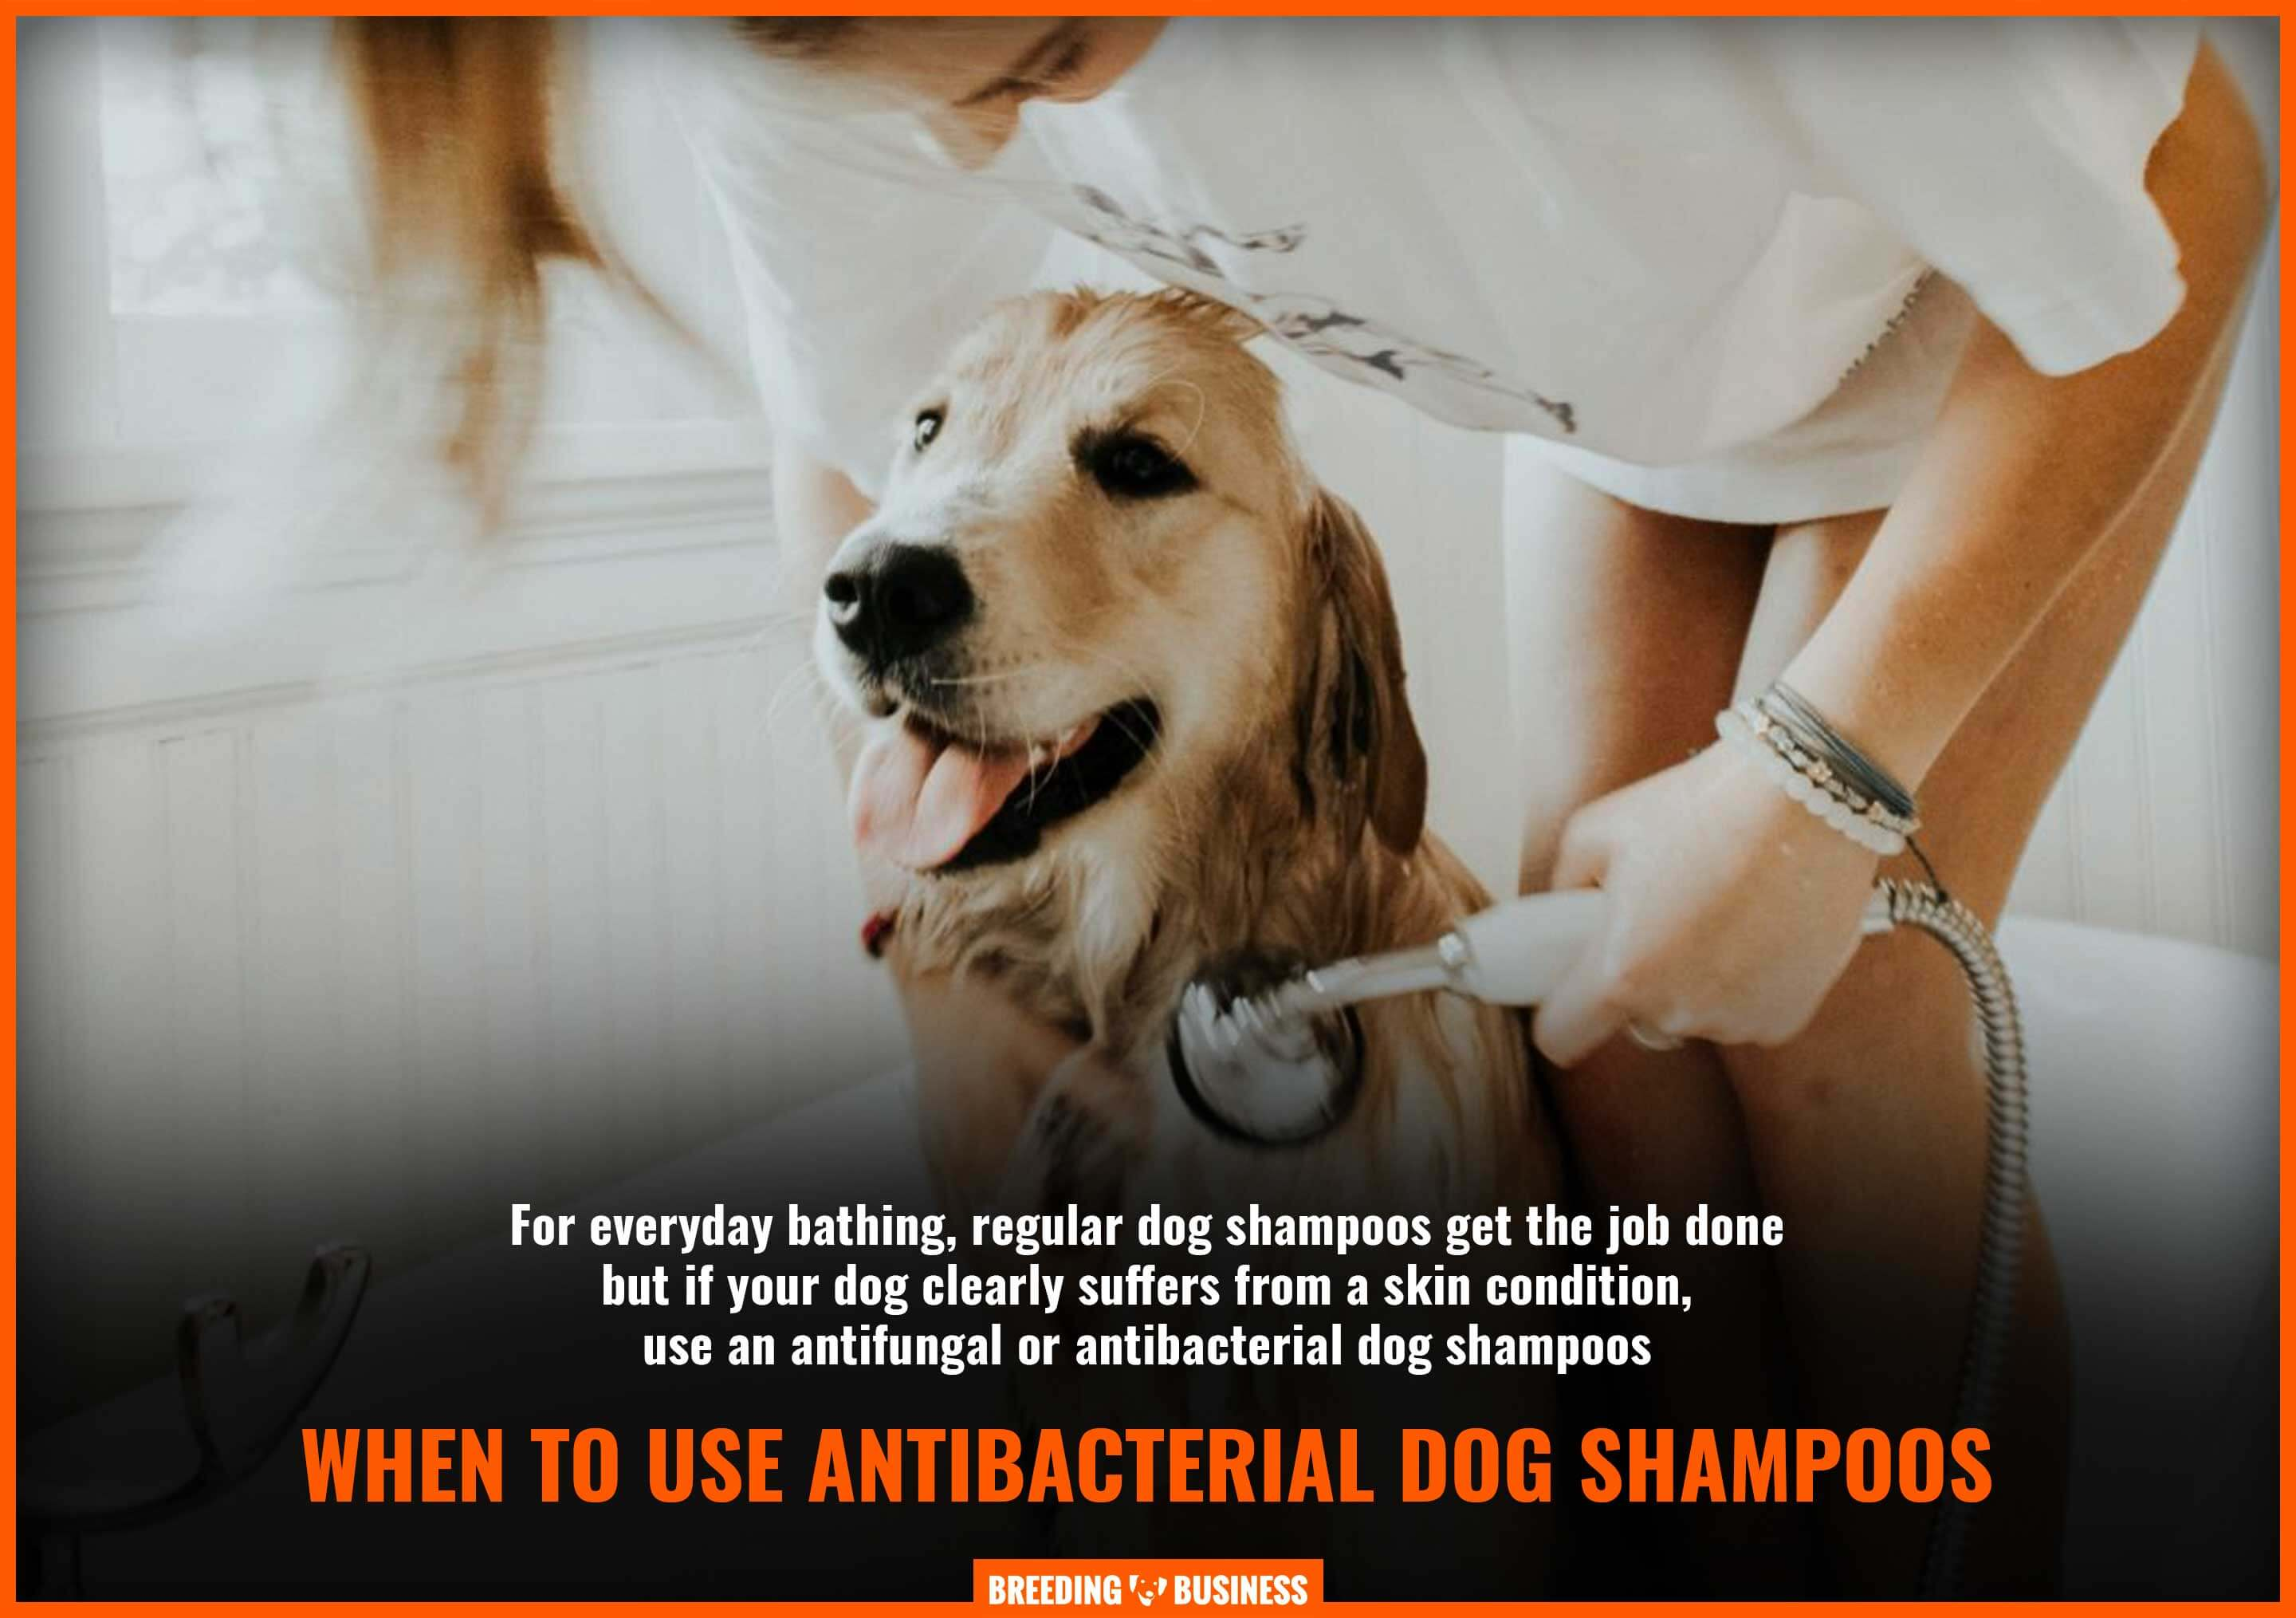 using antibacterial dog shampoos